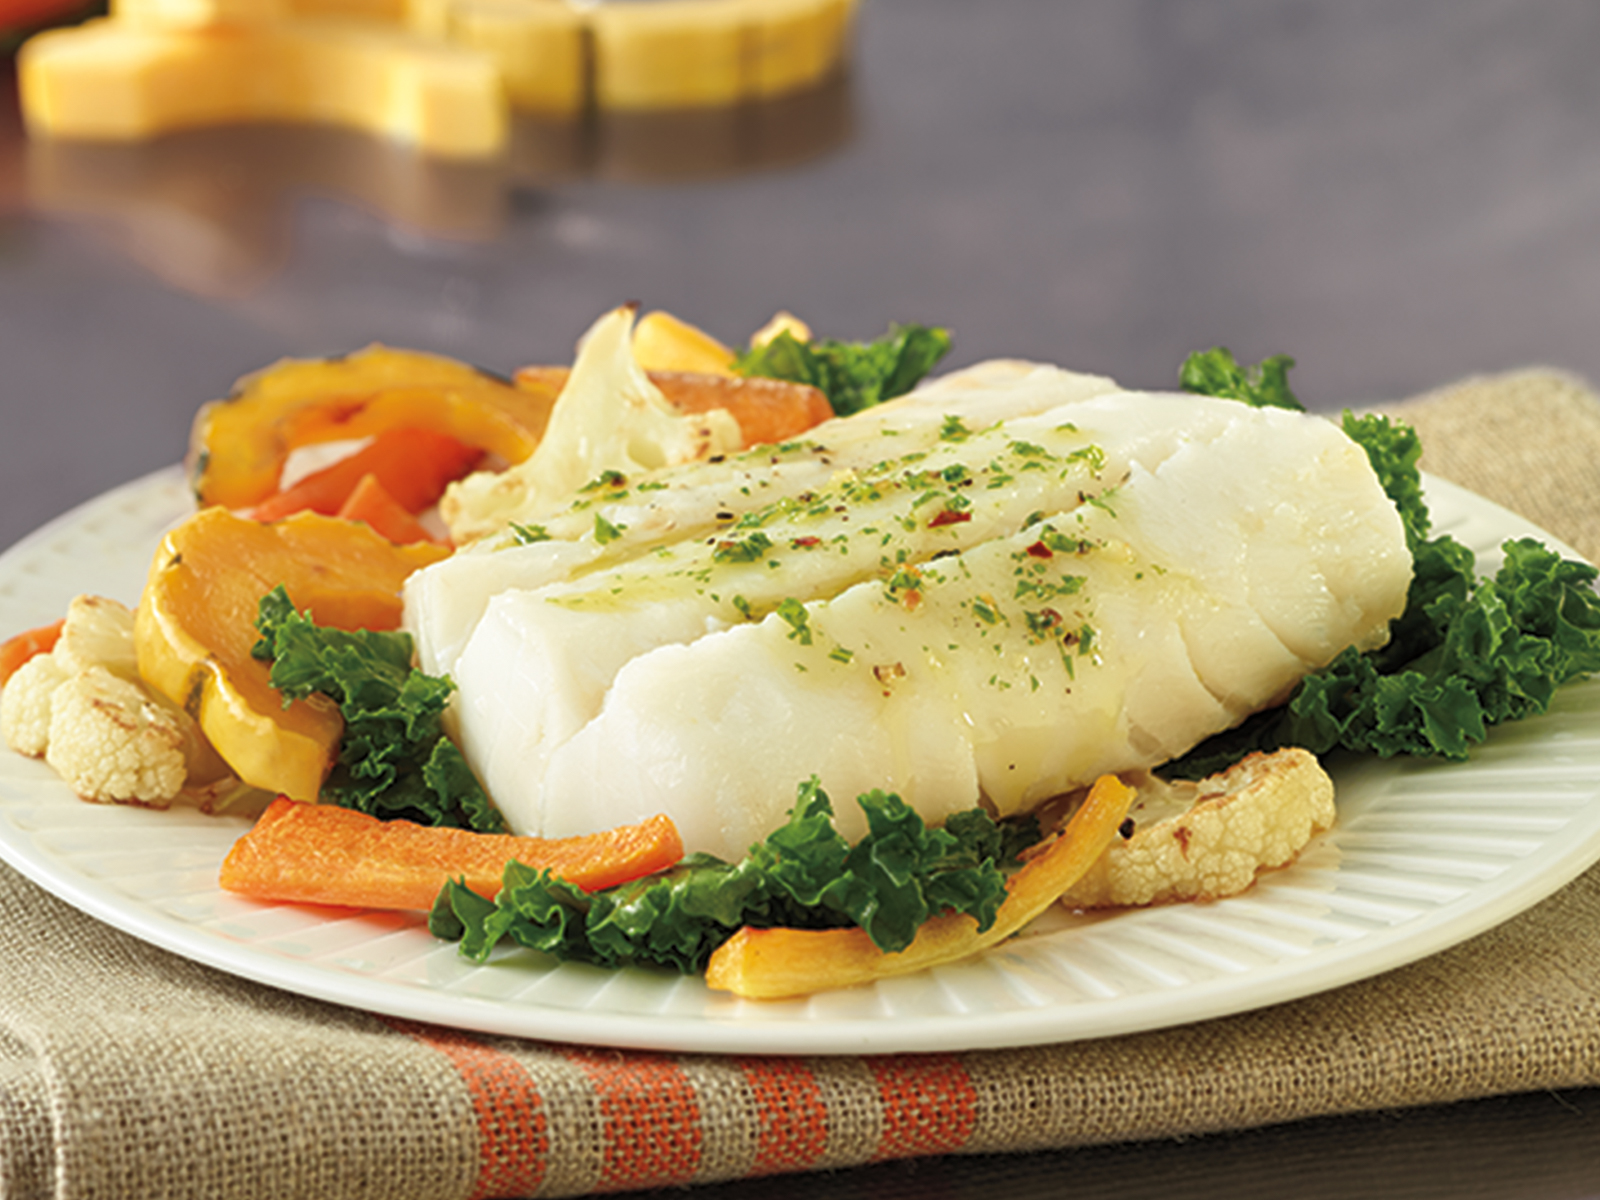 Cod Fillets 16-32 oz Shatter Pack, Skinless, Boneless (3/15 lb) 442453